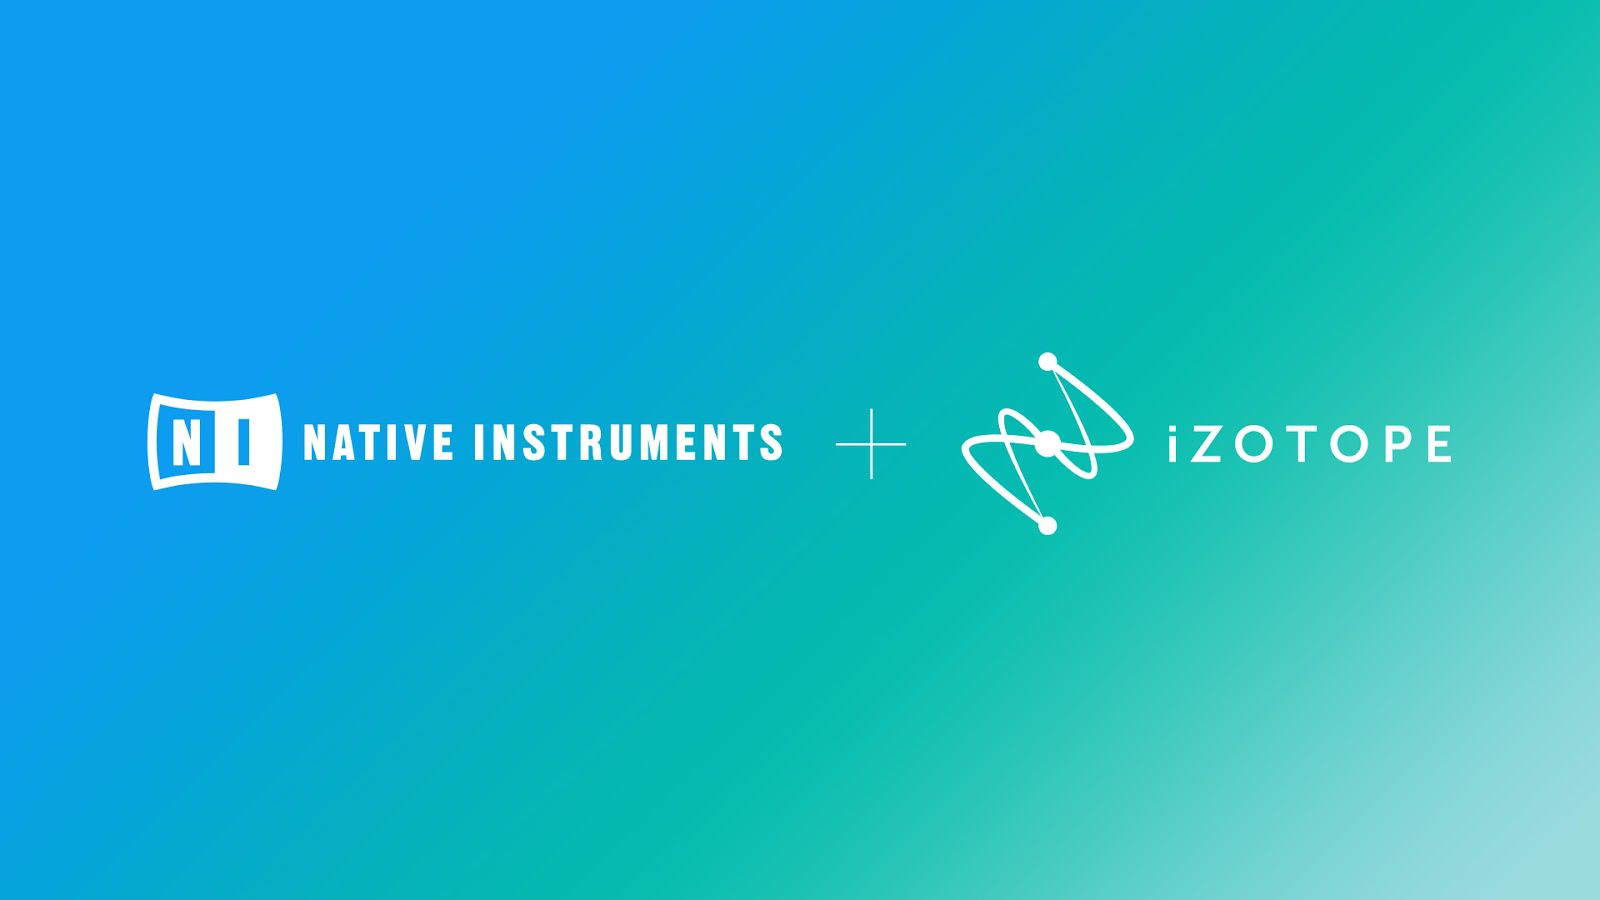 Native Instruments, iZotope team up to focus on building a seamless creator experience